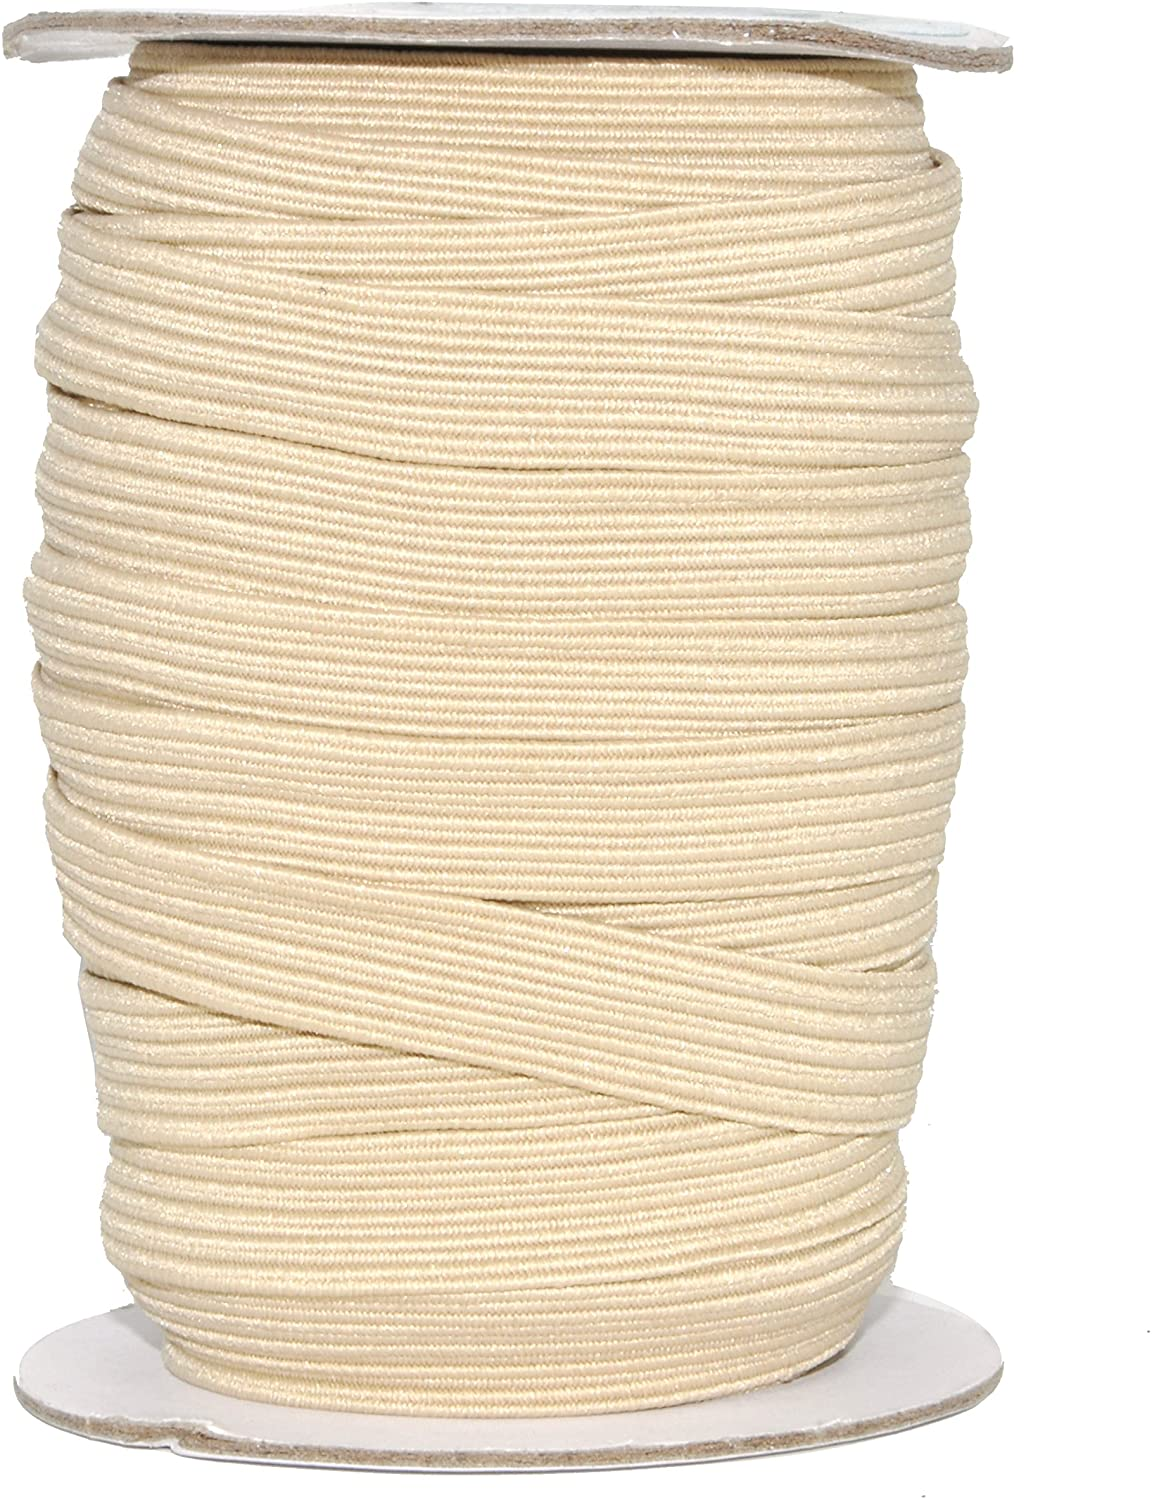 Mandala Crafts Flat Elastic Band, Braided Stretch Strap Cord Roll for Sewing and Crafting; 1/2 inch 12mm 20 Yards Cream